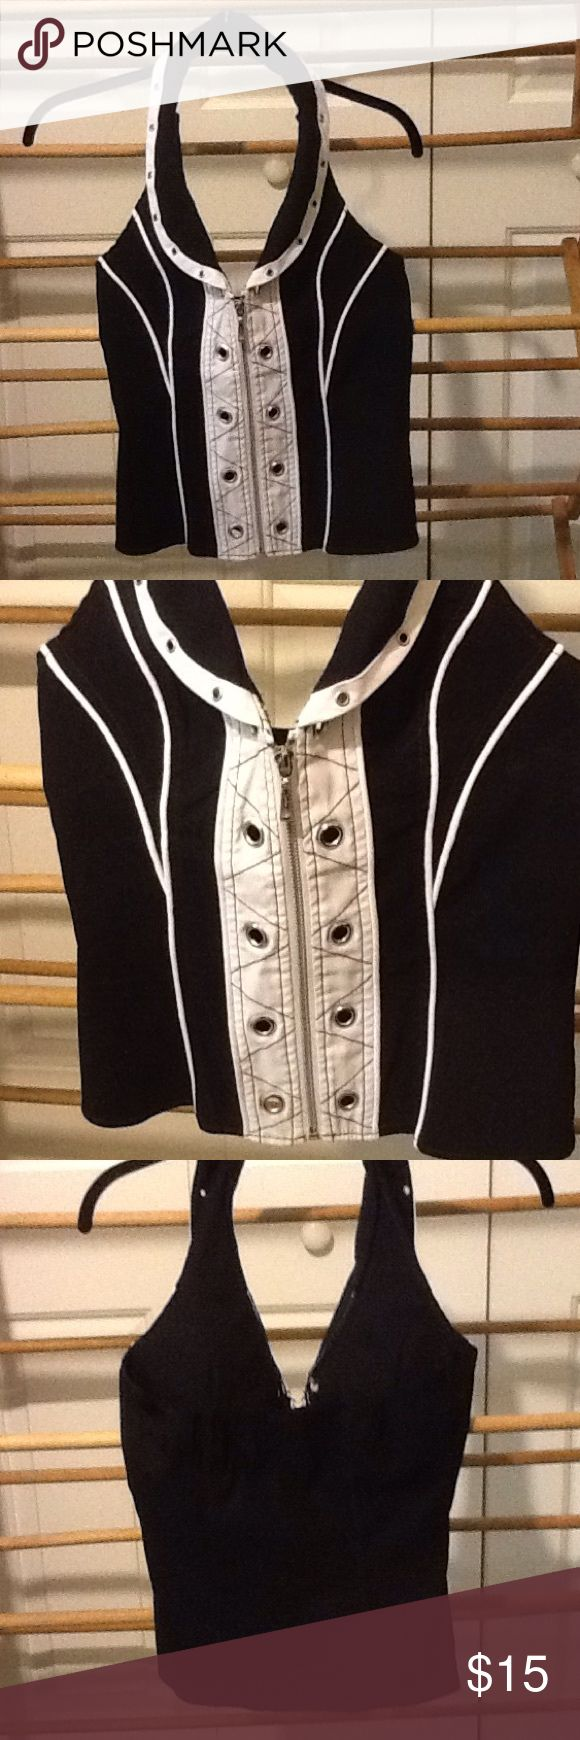 "Sexy. Black and White Vest Women's size small cotton, nylon, and spandex black and white vest. Zips up. Cool design. Will be fitted tight. 26"" bust, 26"" waist. 23"" long. In good condition. ole ole Jackets & Coats Vests"